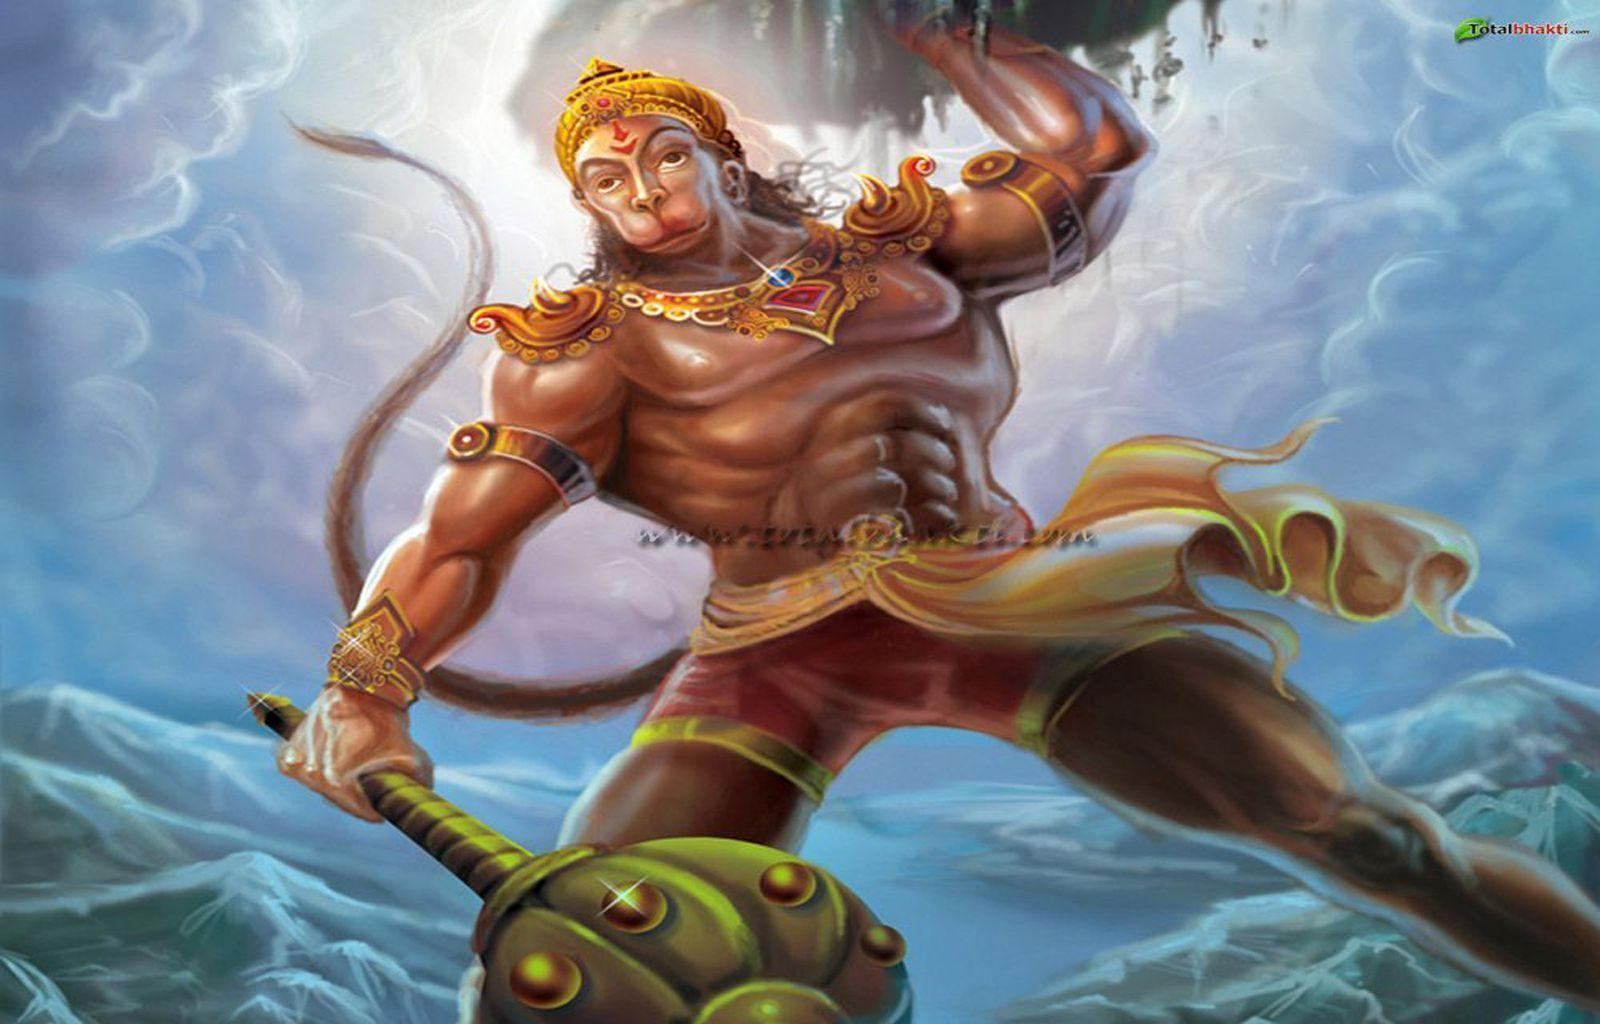 hanuman wallpaper, Hindu wallpaper, Lord Hanuman lifting mountain ...